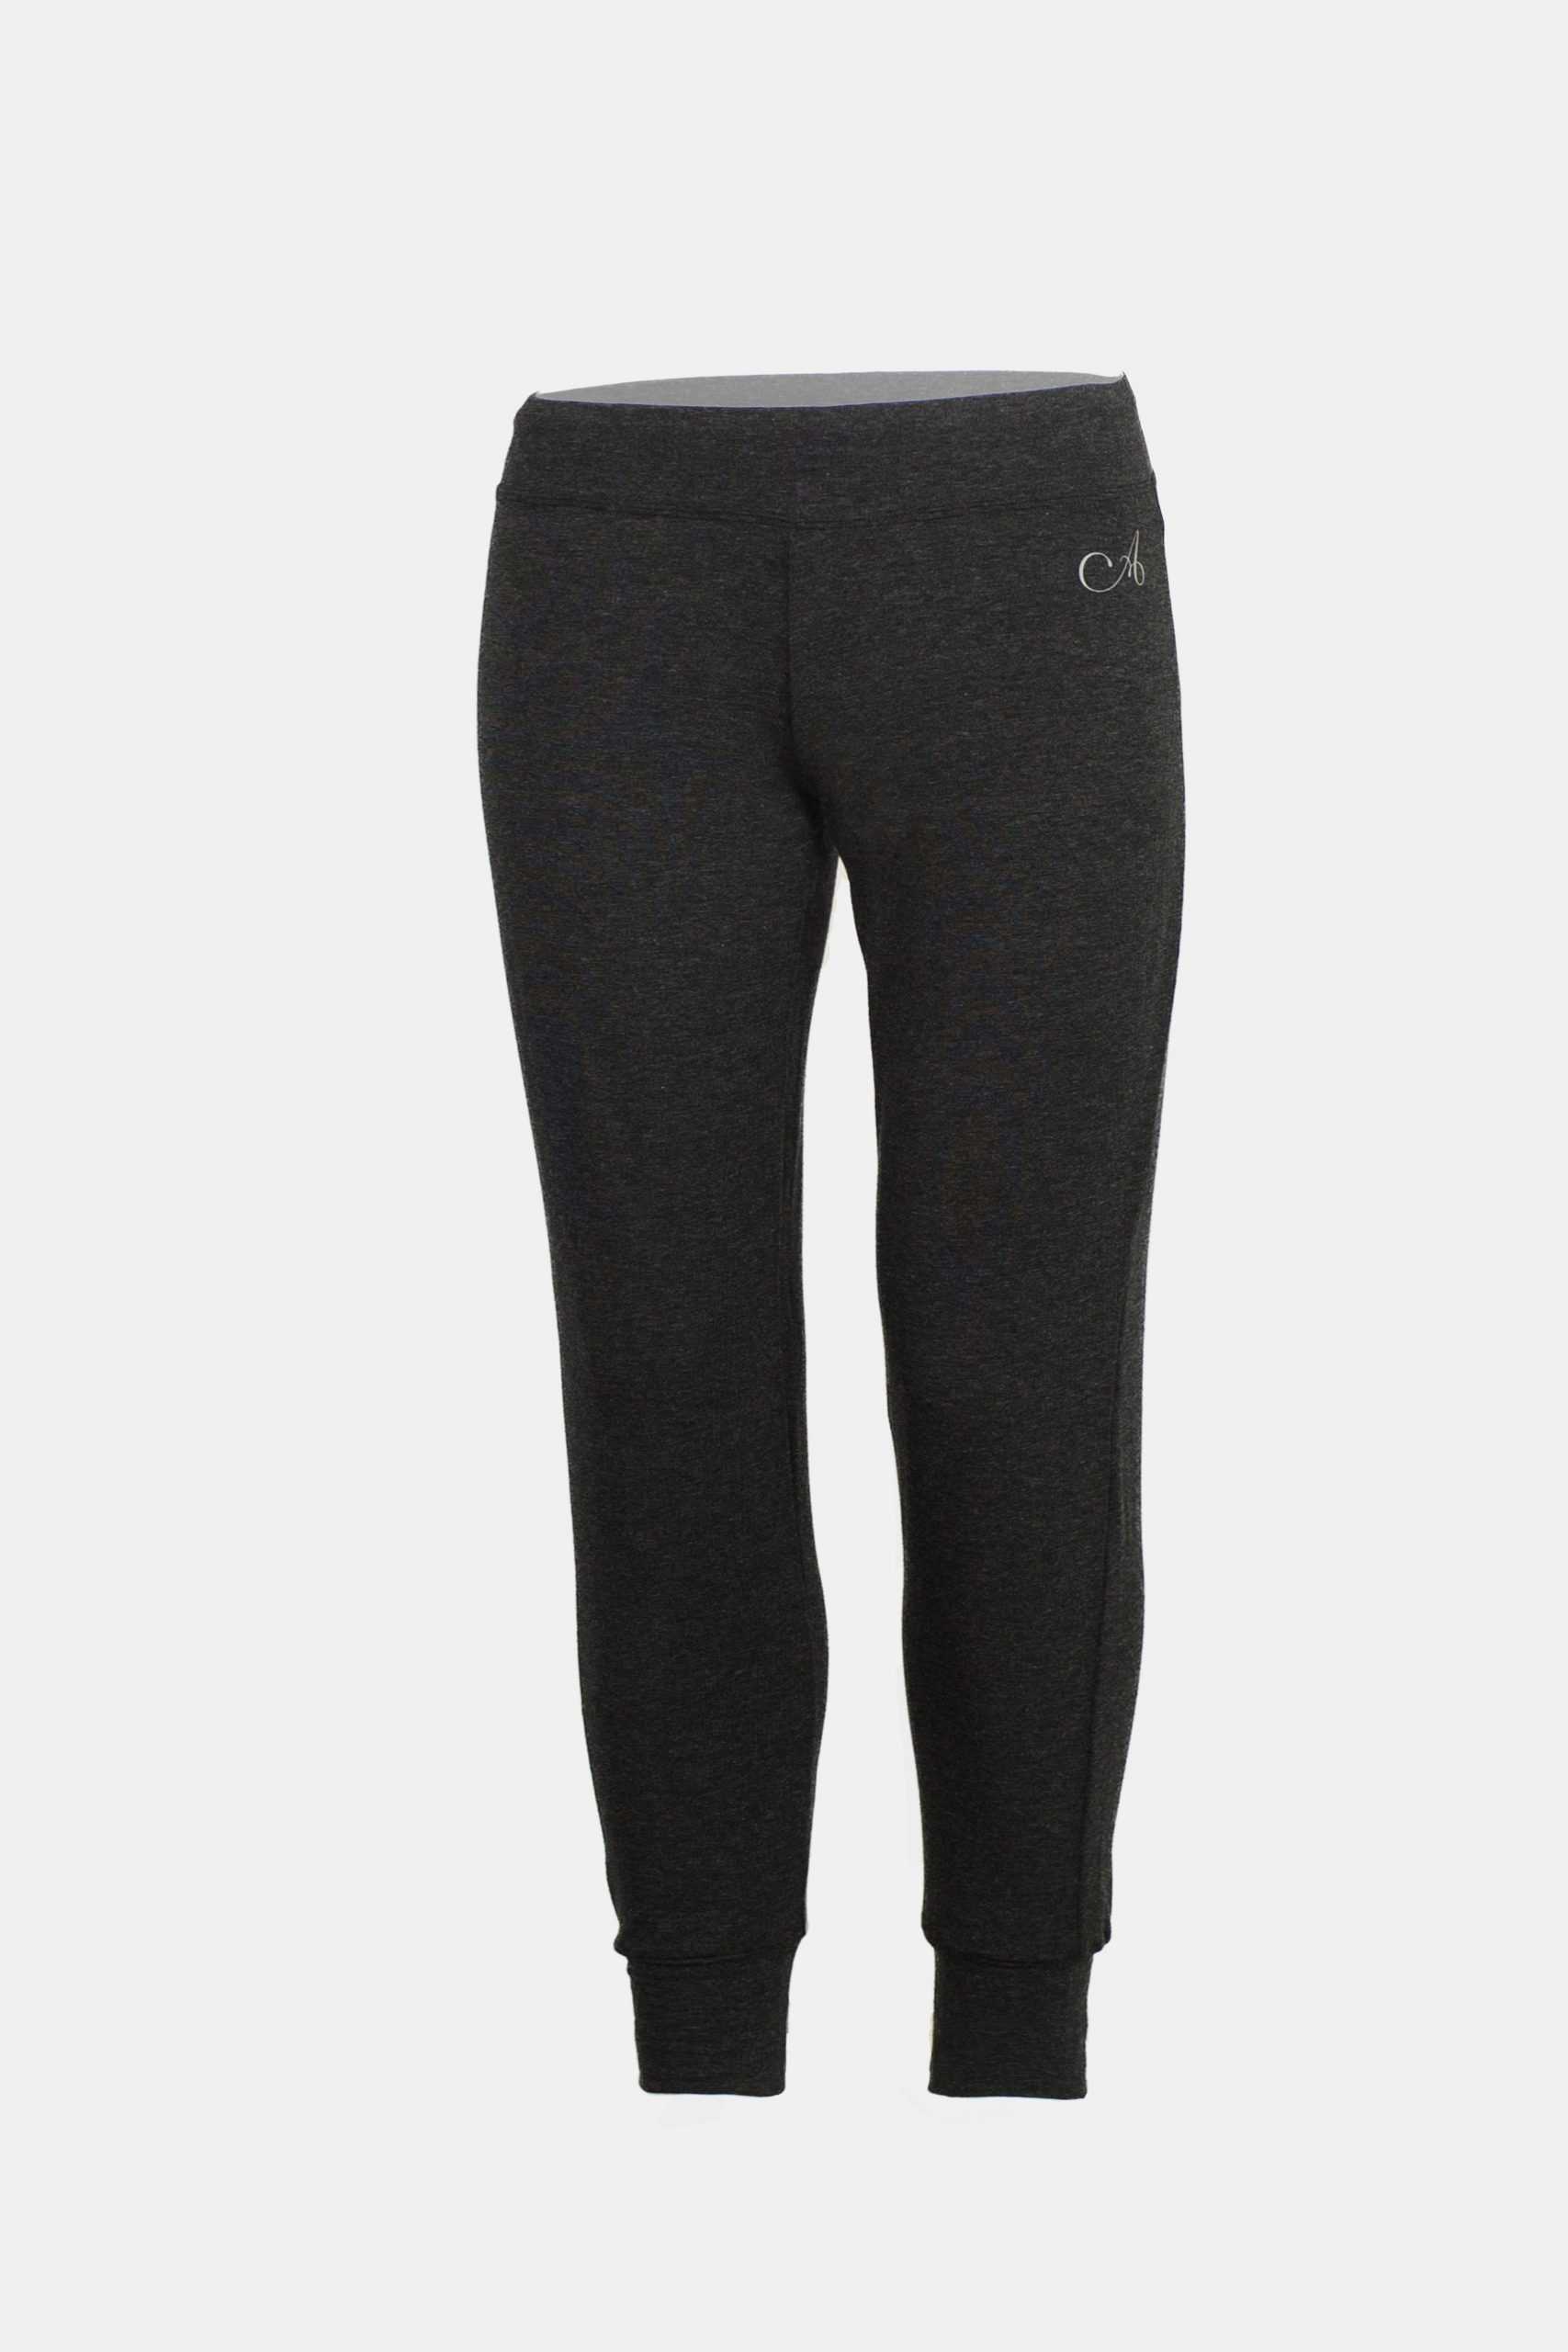 Soft Jersey Warmup Pants | Ballet Clothes | Ainsliewear | BALLETONIST